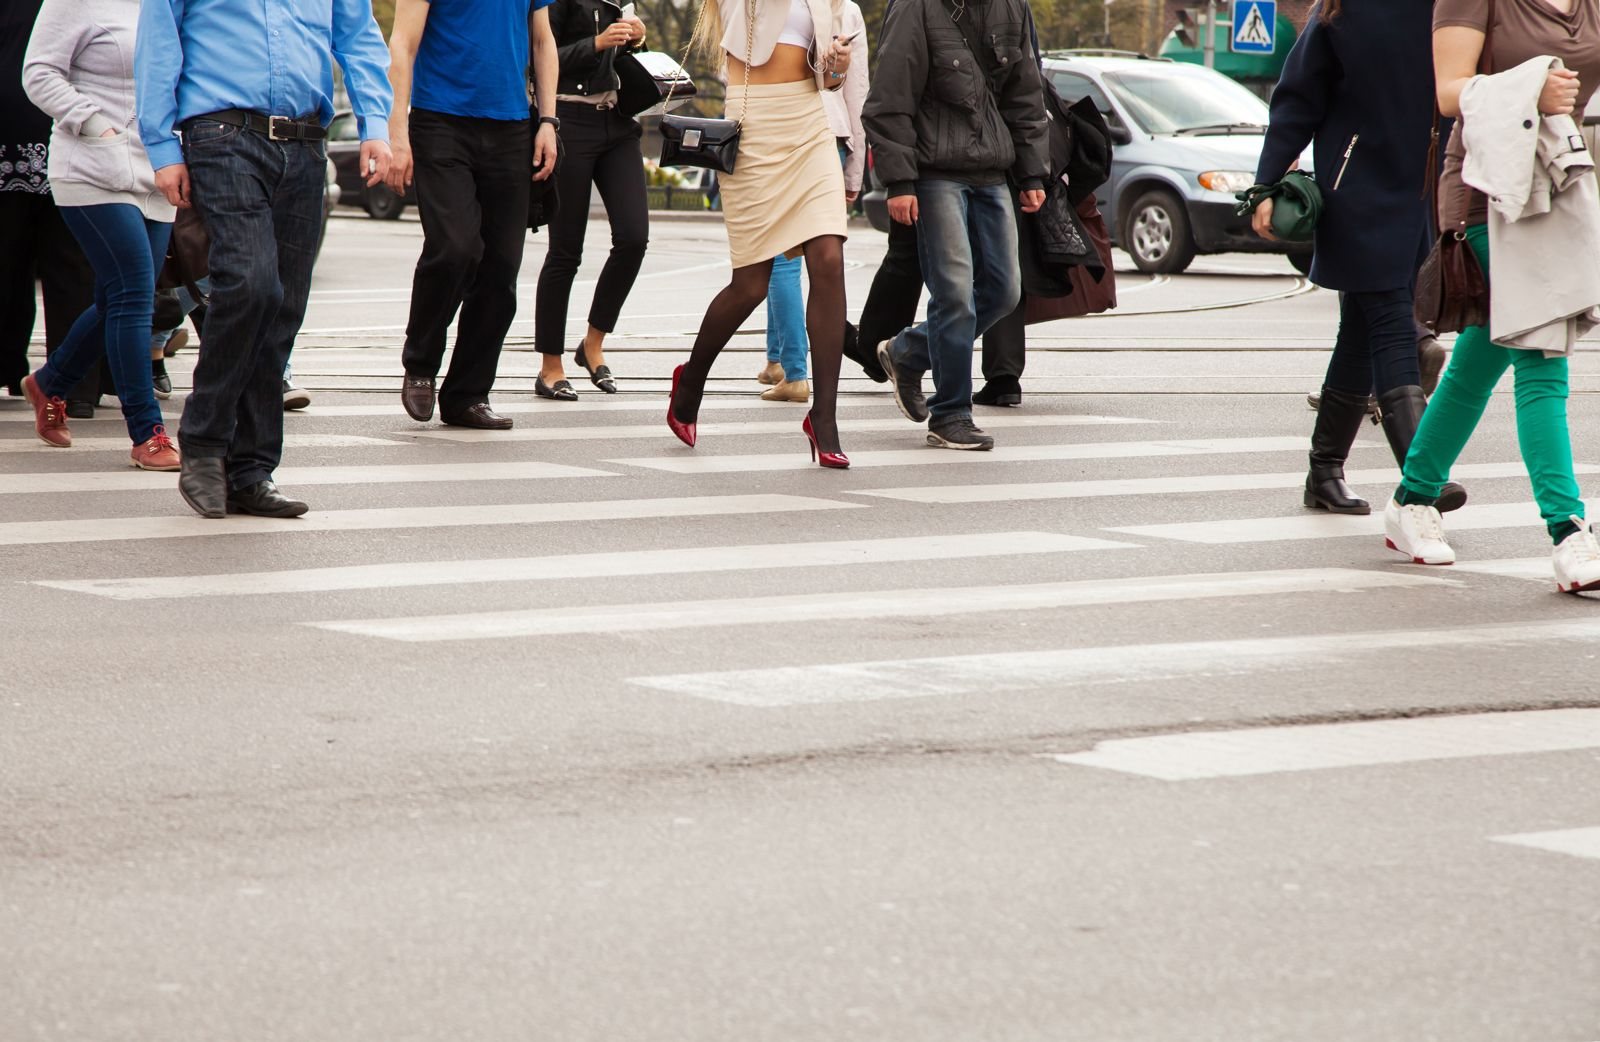 Legs of Pedestrians in a Crosswalk